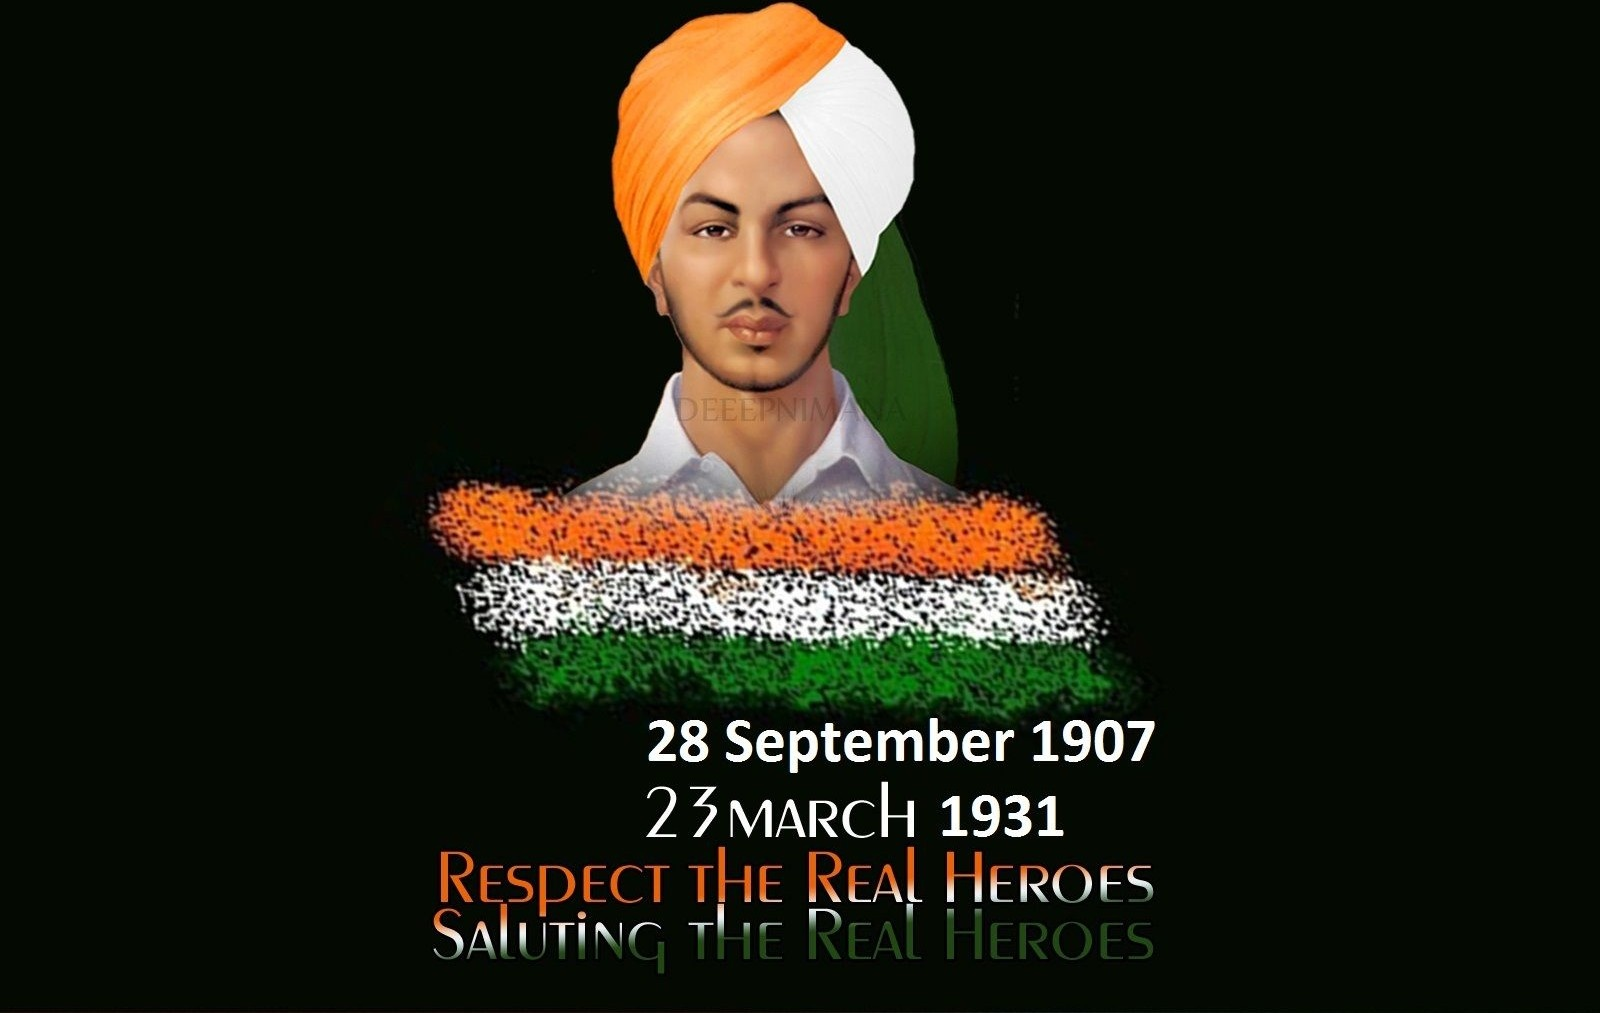 Shaheed Bhagat Singh Birthday Images Quotes Fb Whatsapp Status Wallpaper Photos